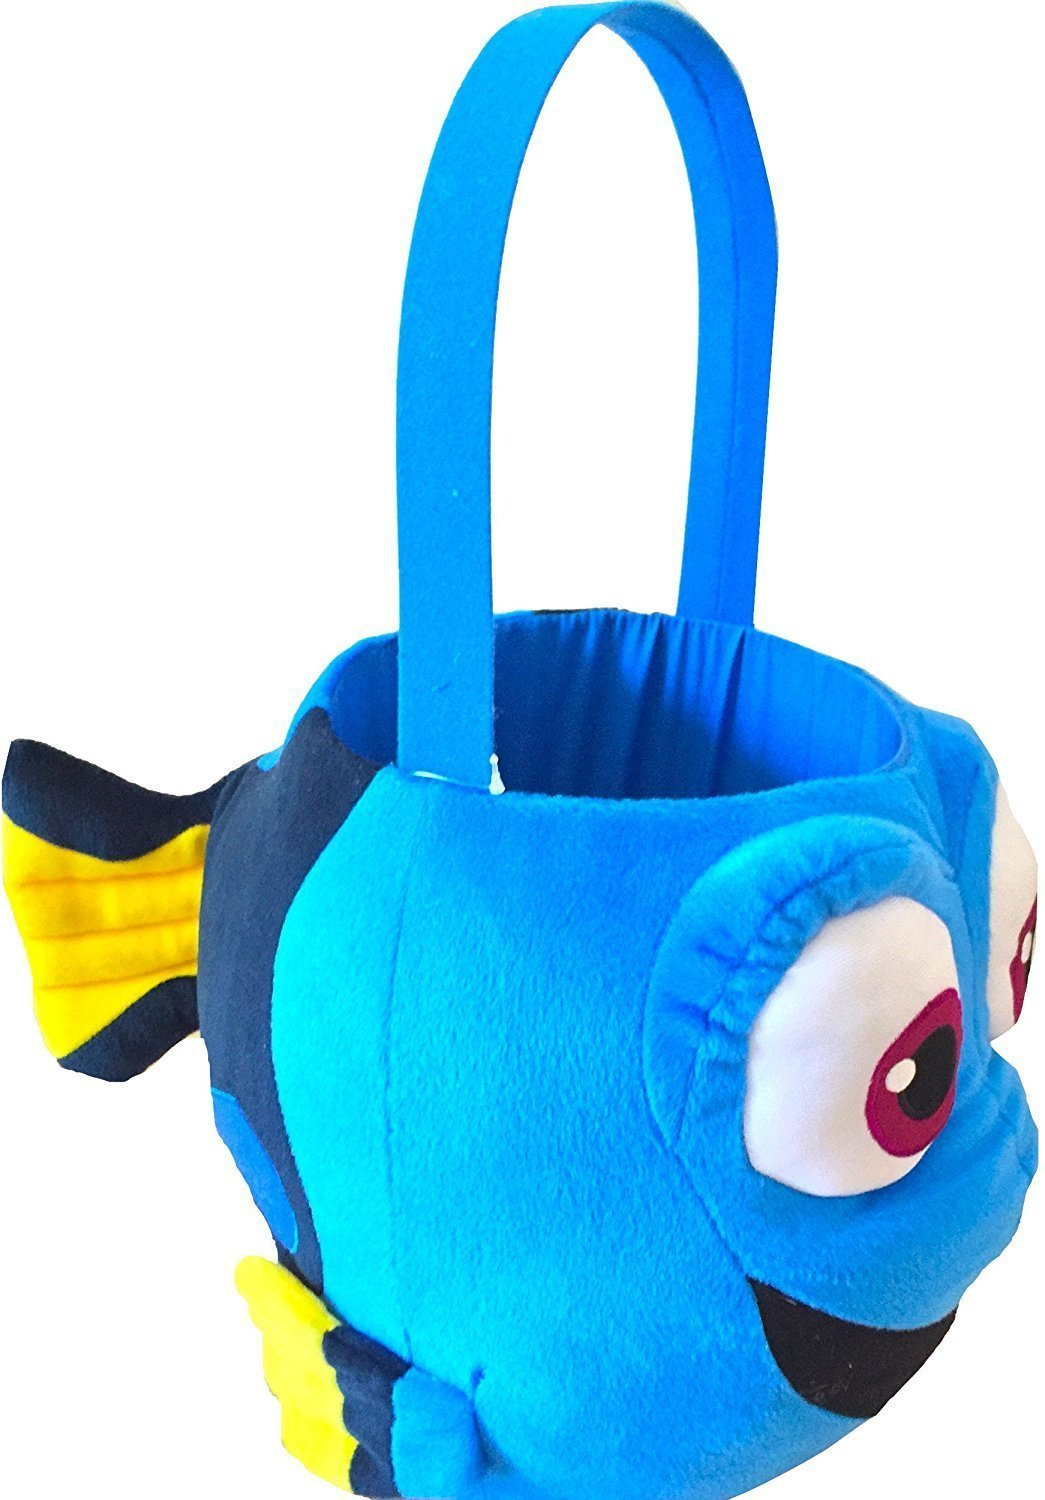 Disney Pixar's Finding Dory Deluxe Gift Basket with Swimways Goggles, Coloring Book, and Dory Games! - Perfect Idea for Boys or Girls for Birthday, Get Well, Vacation Toys, Surprise, or Other Occasion